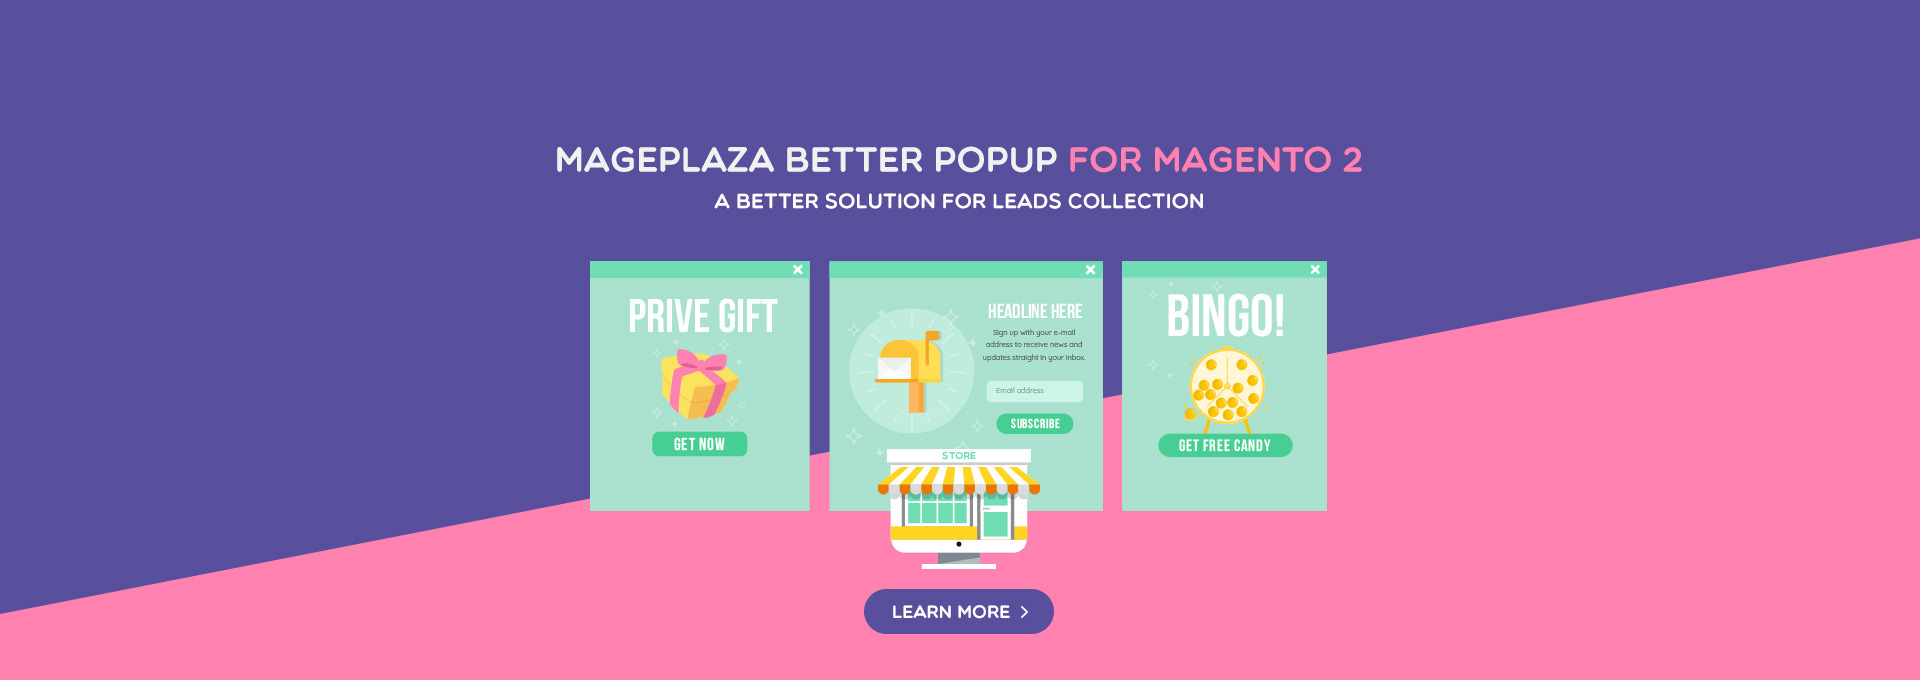 Better Popup - A better solution for leads collection